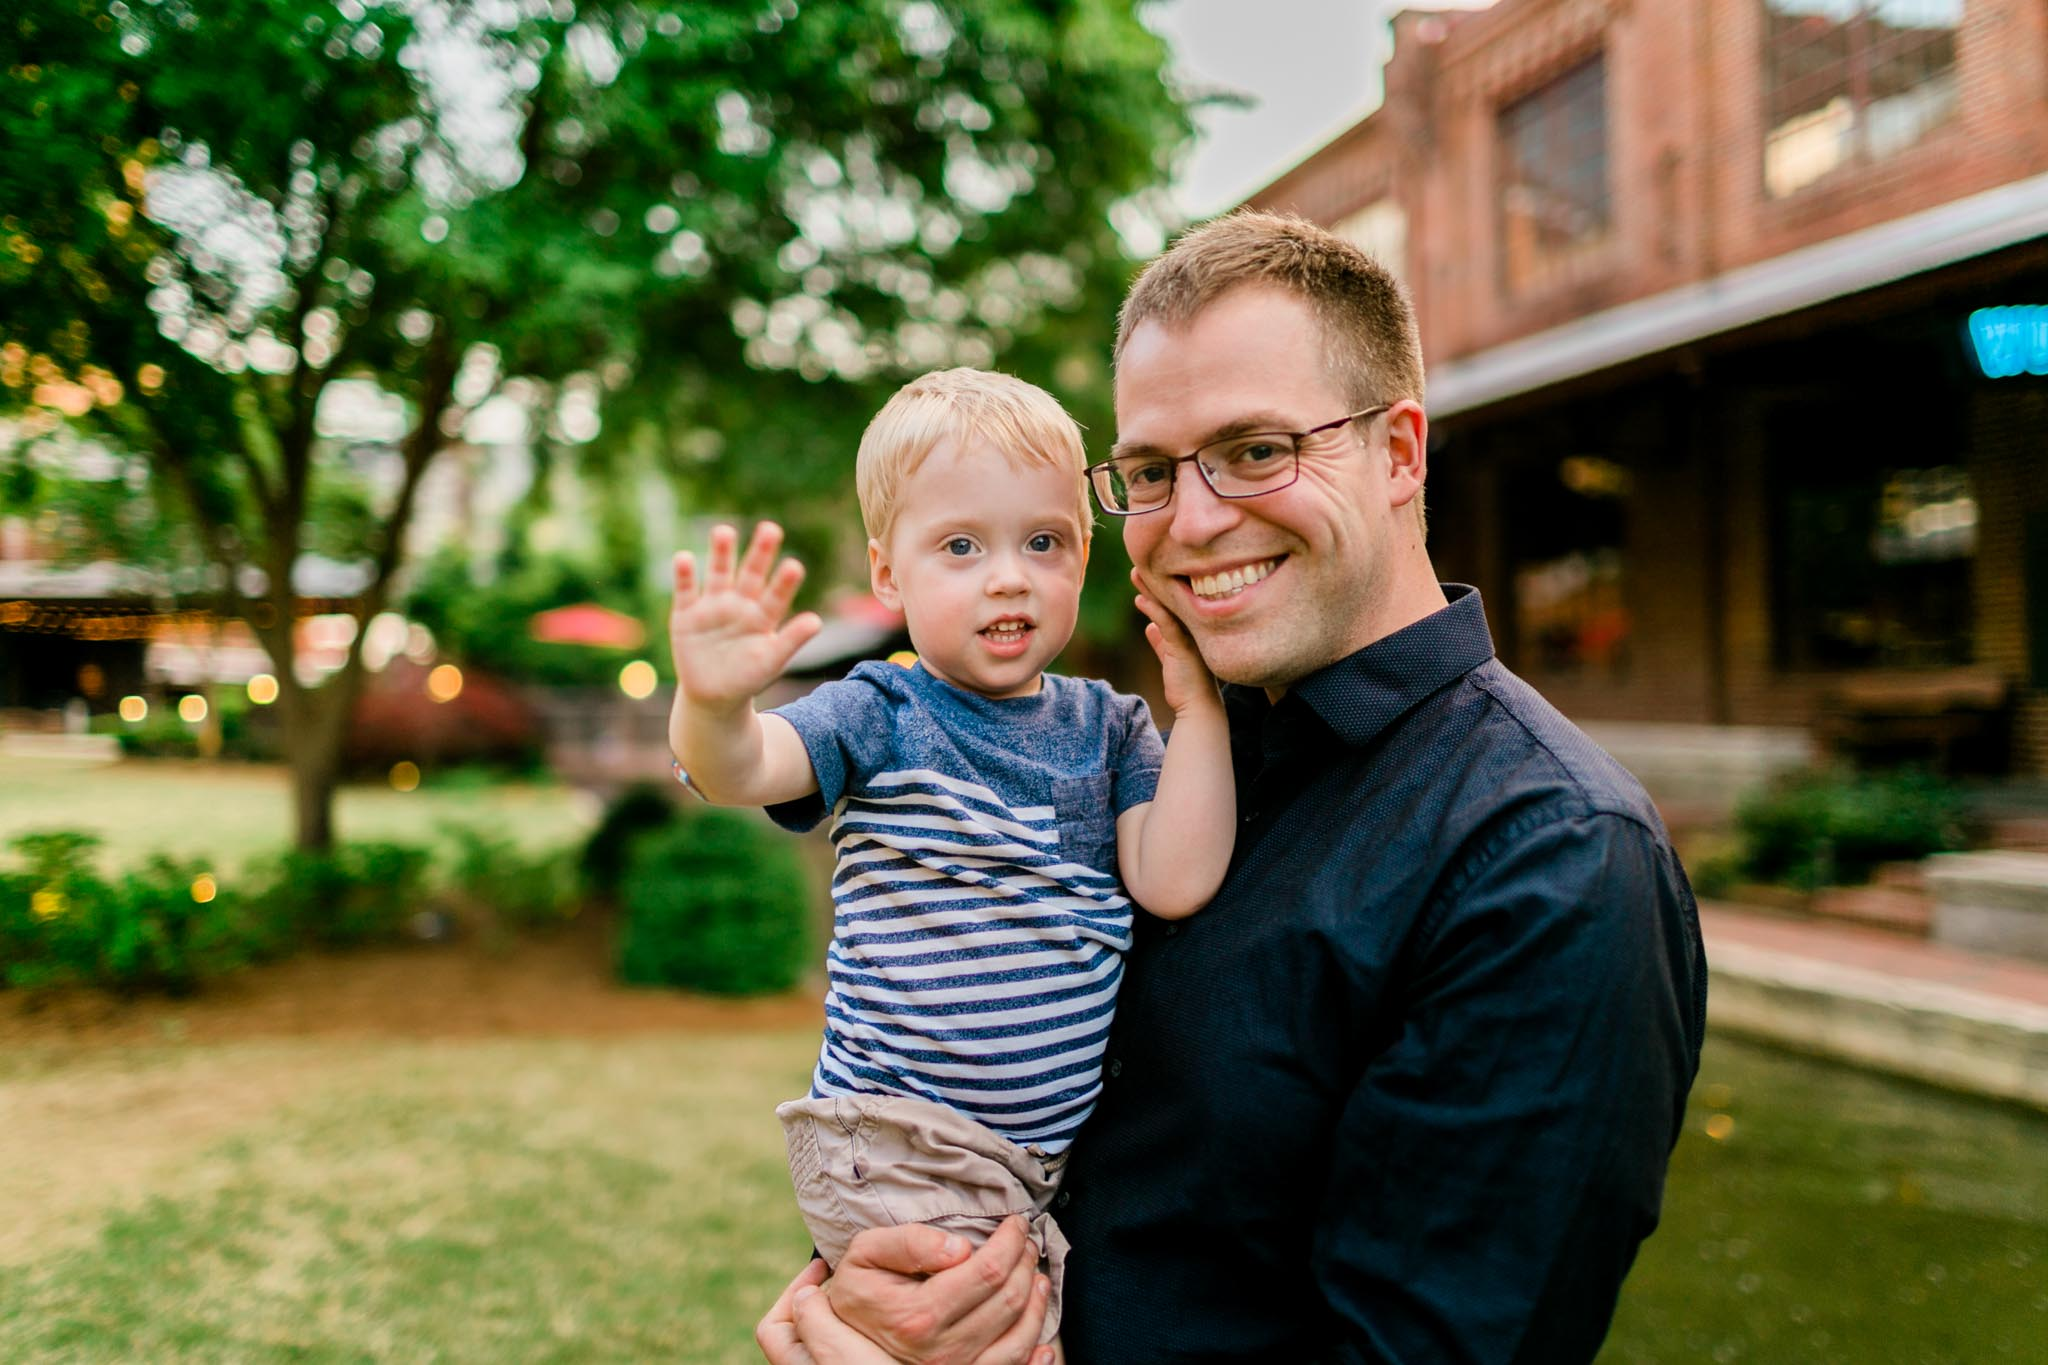 Durham Photographer | By G. Lin Photography | Father holding son